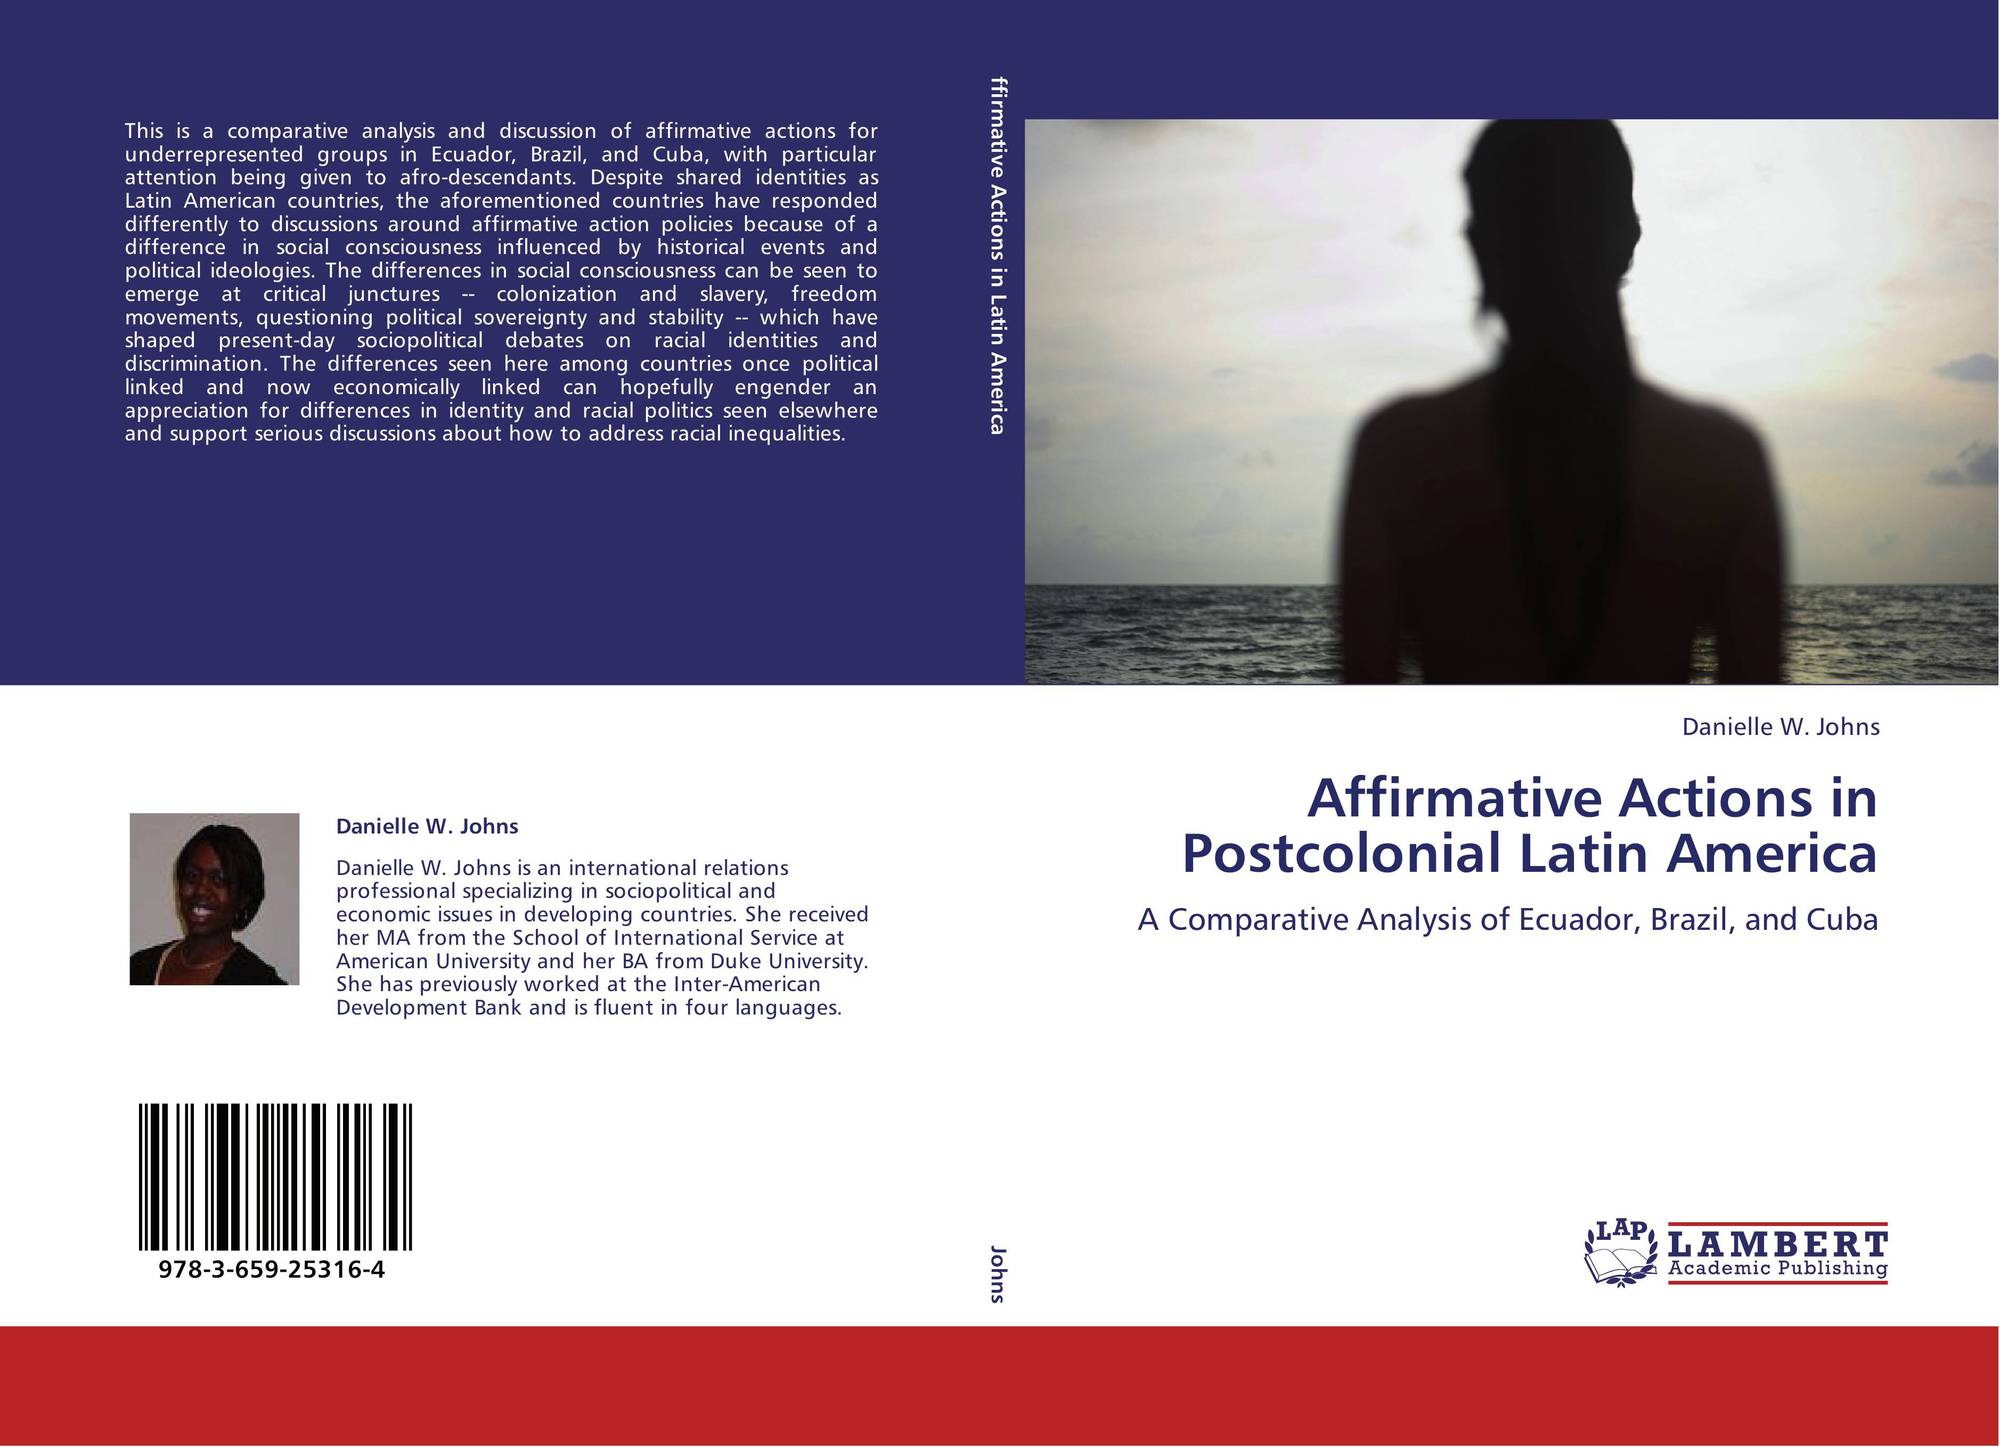 a comparison of the public opinion and policy on affirmative action The affirmative action battle in michigan dates back nearly 20 years in one case, two white students who had been denied undergraduate admission to a cbs news/new york times poll conducted last may found that 53% of the public supported affirmative action programs in hiring, promoting and.